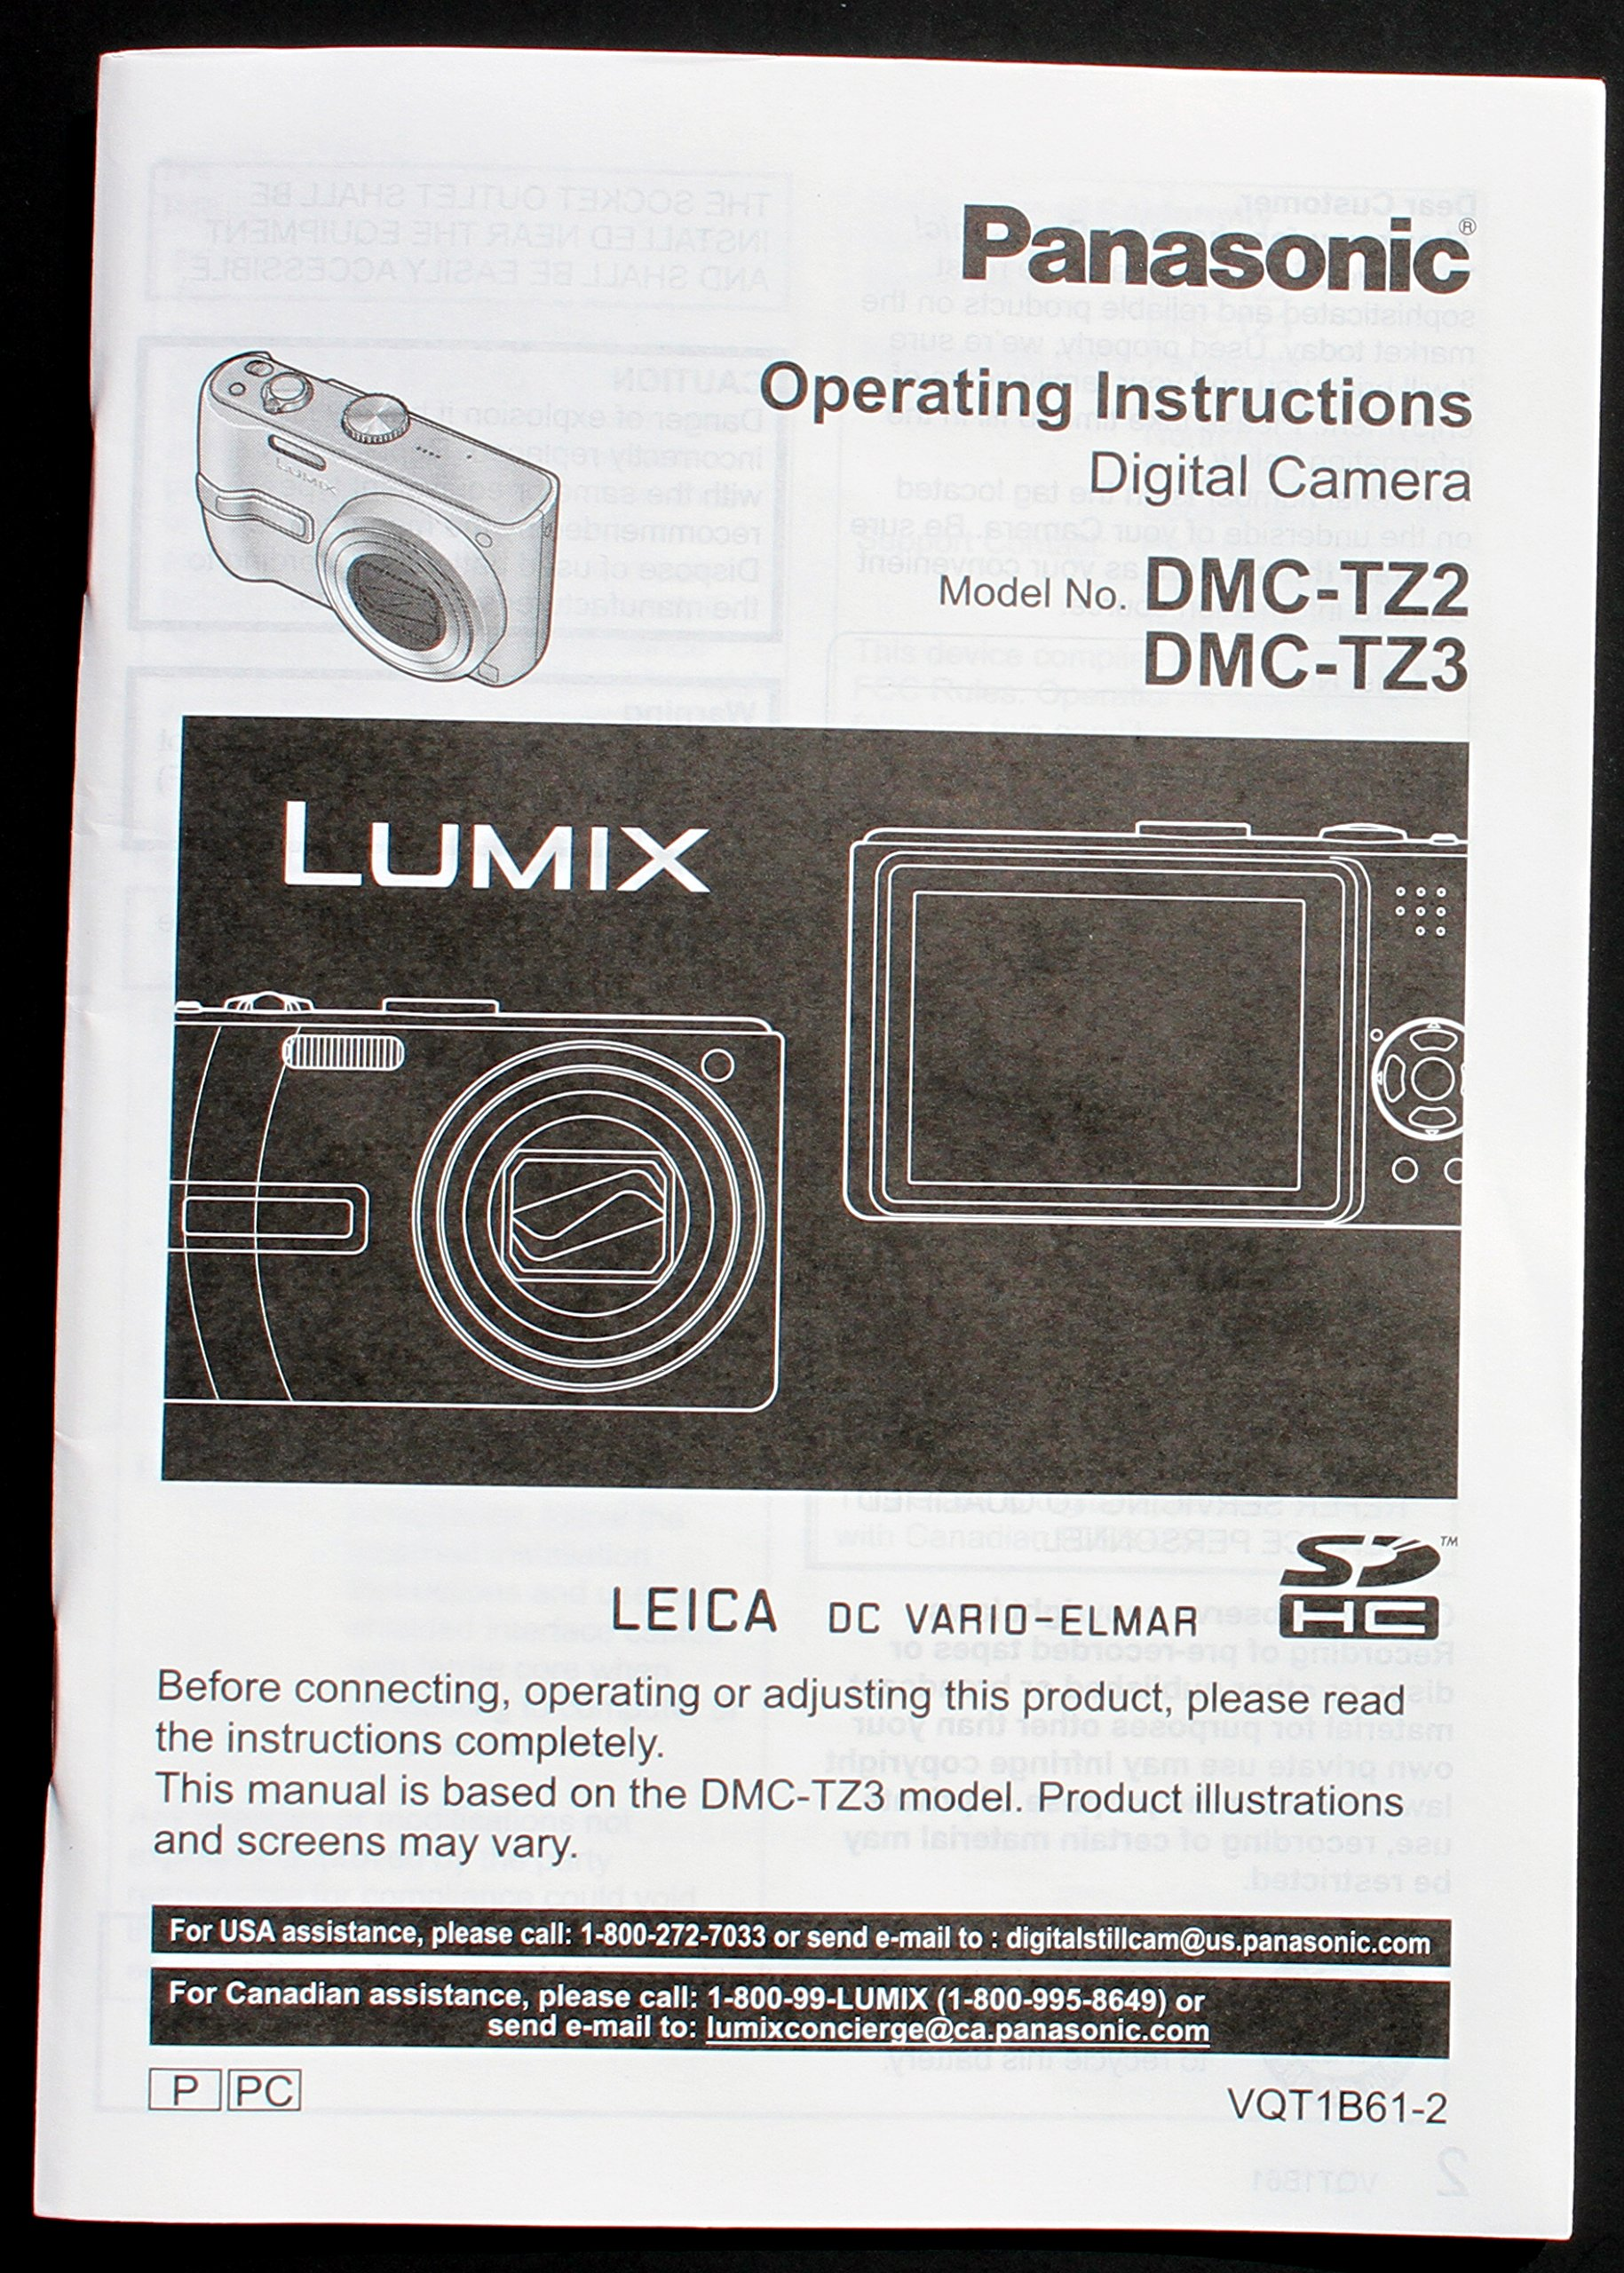 panasonic lumix dmc tz2 dmc tz3 original operating instruction rh amazon com panasonic lumix dmc-tz3 manuel panasonic lumix dmc-tz3 manuel